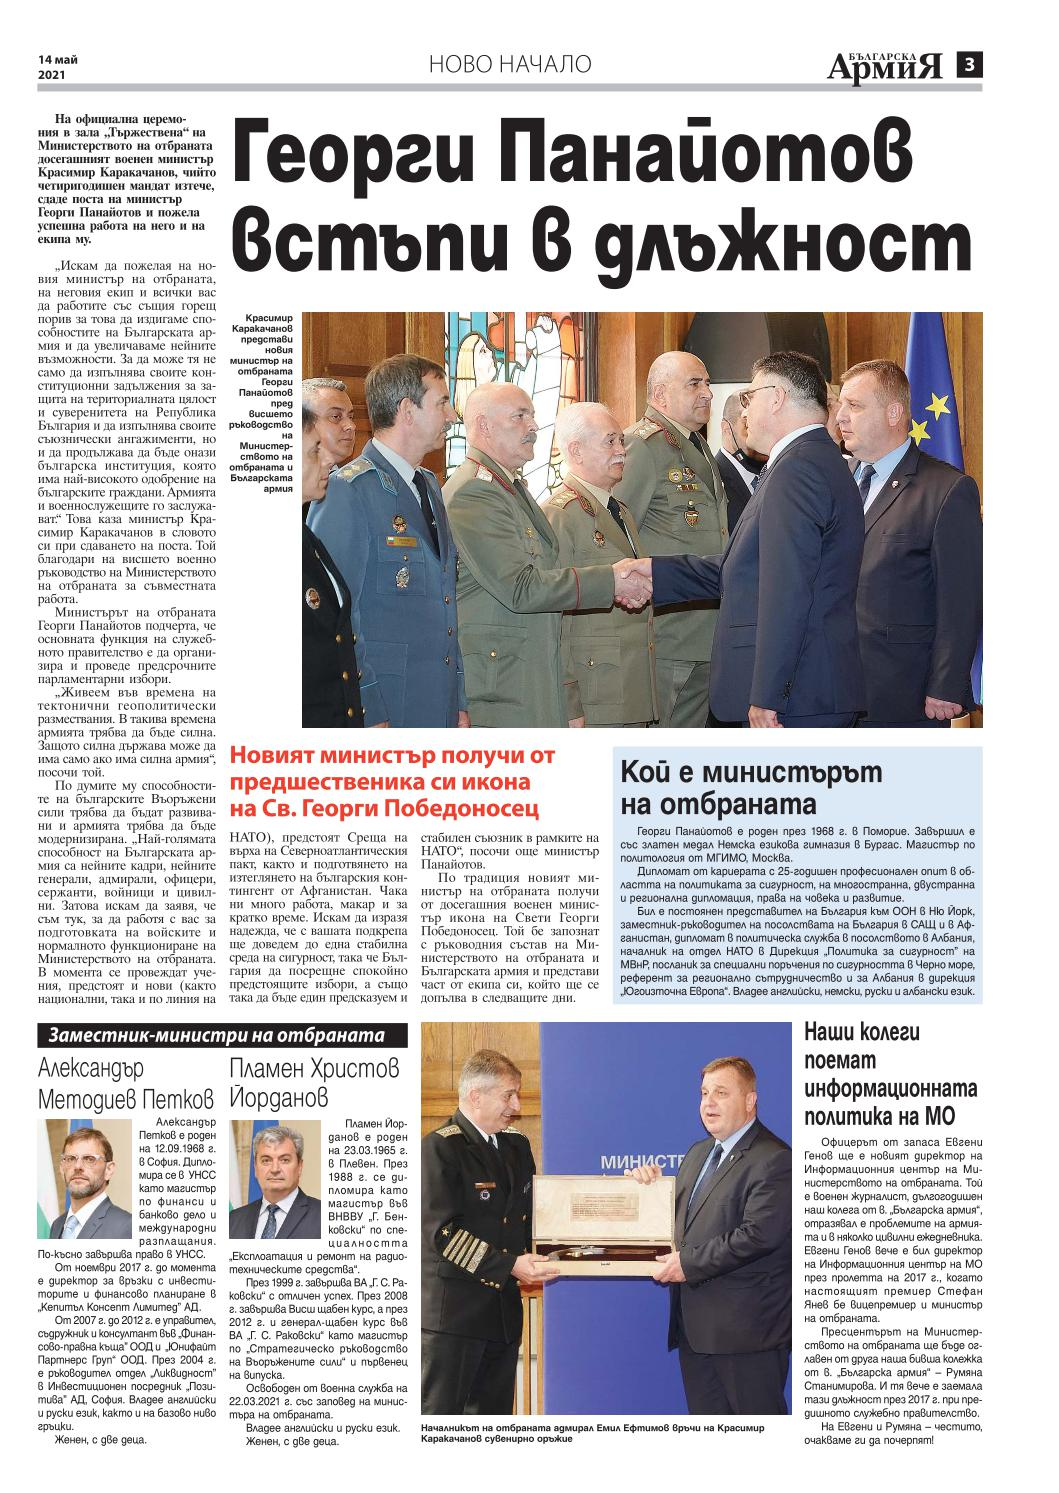 https://armymedia.bg/wp-content/uploads/2021/05/03.page1_-1.jpg